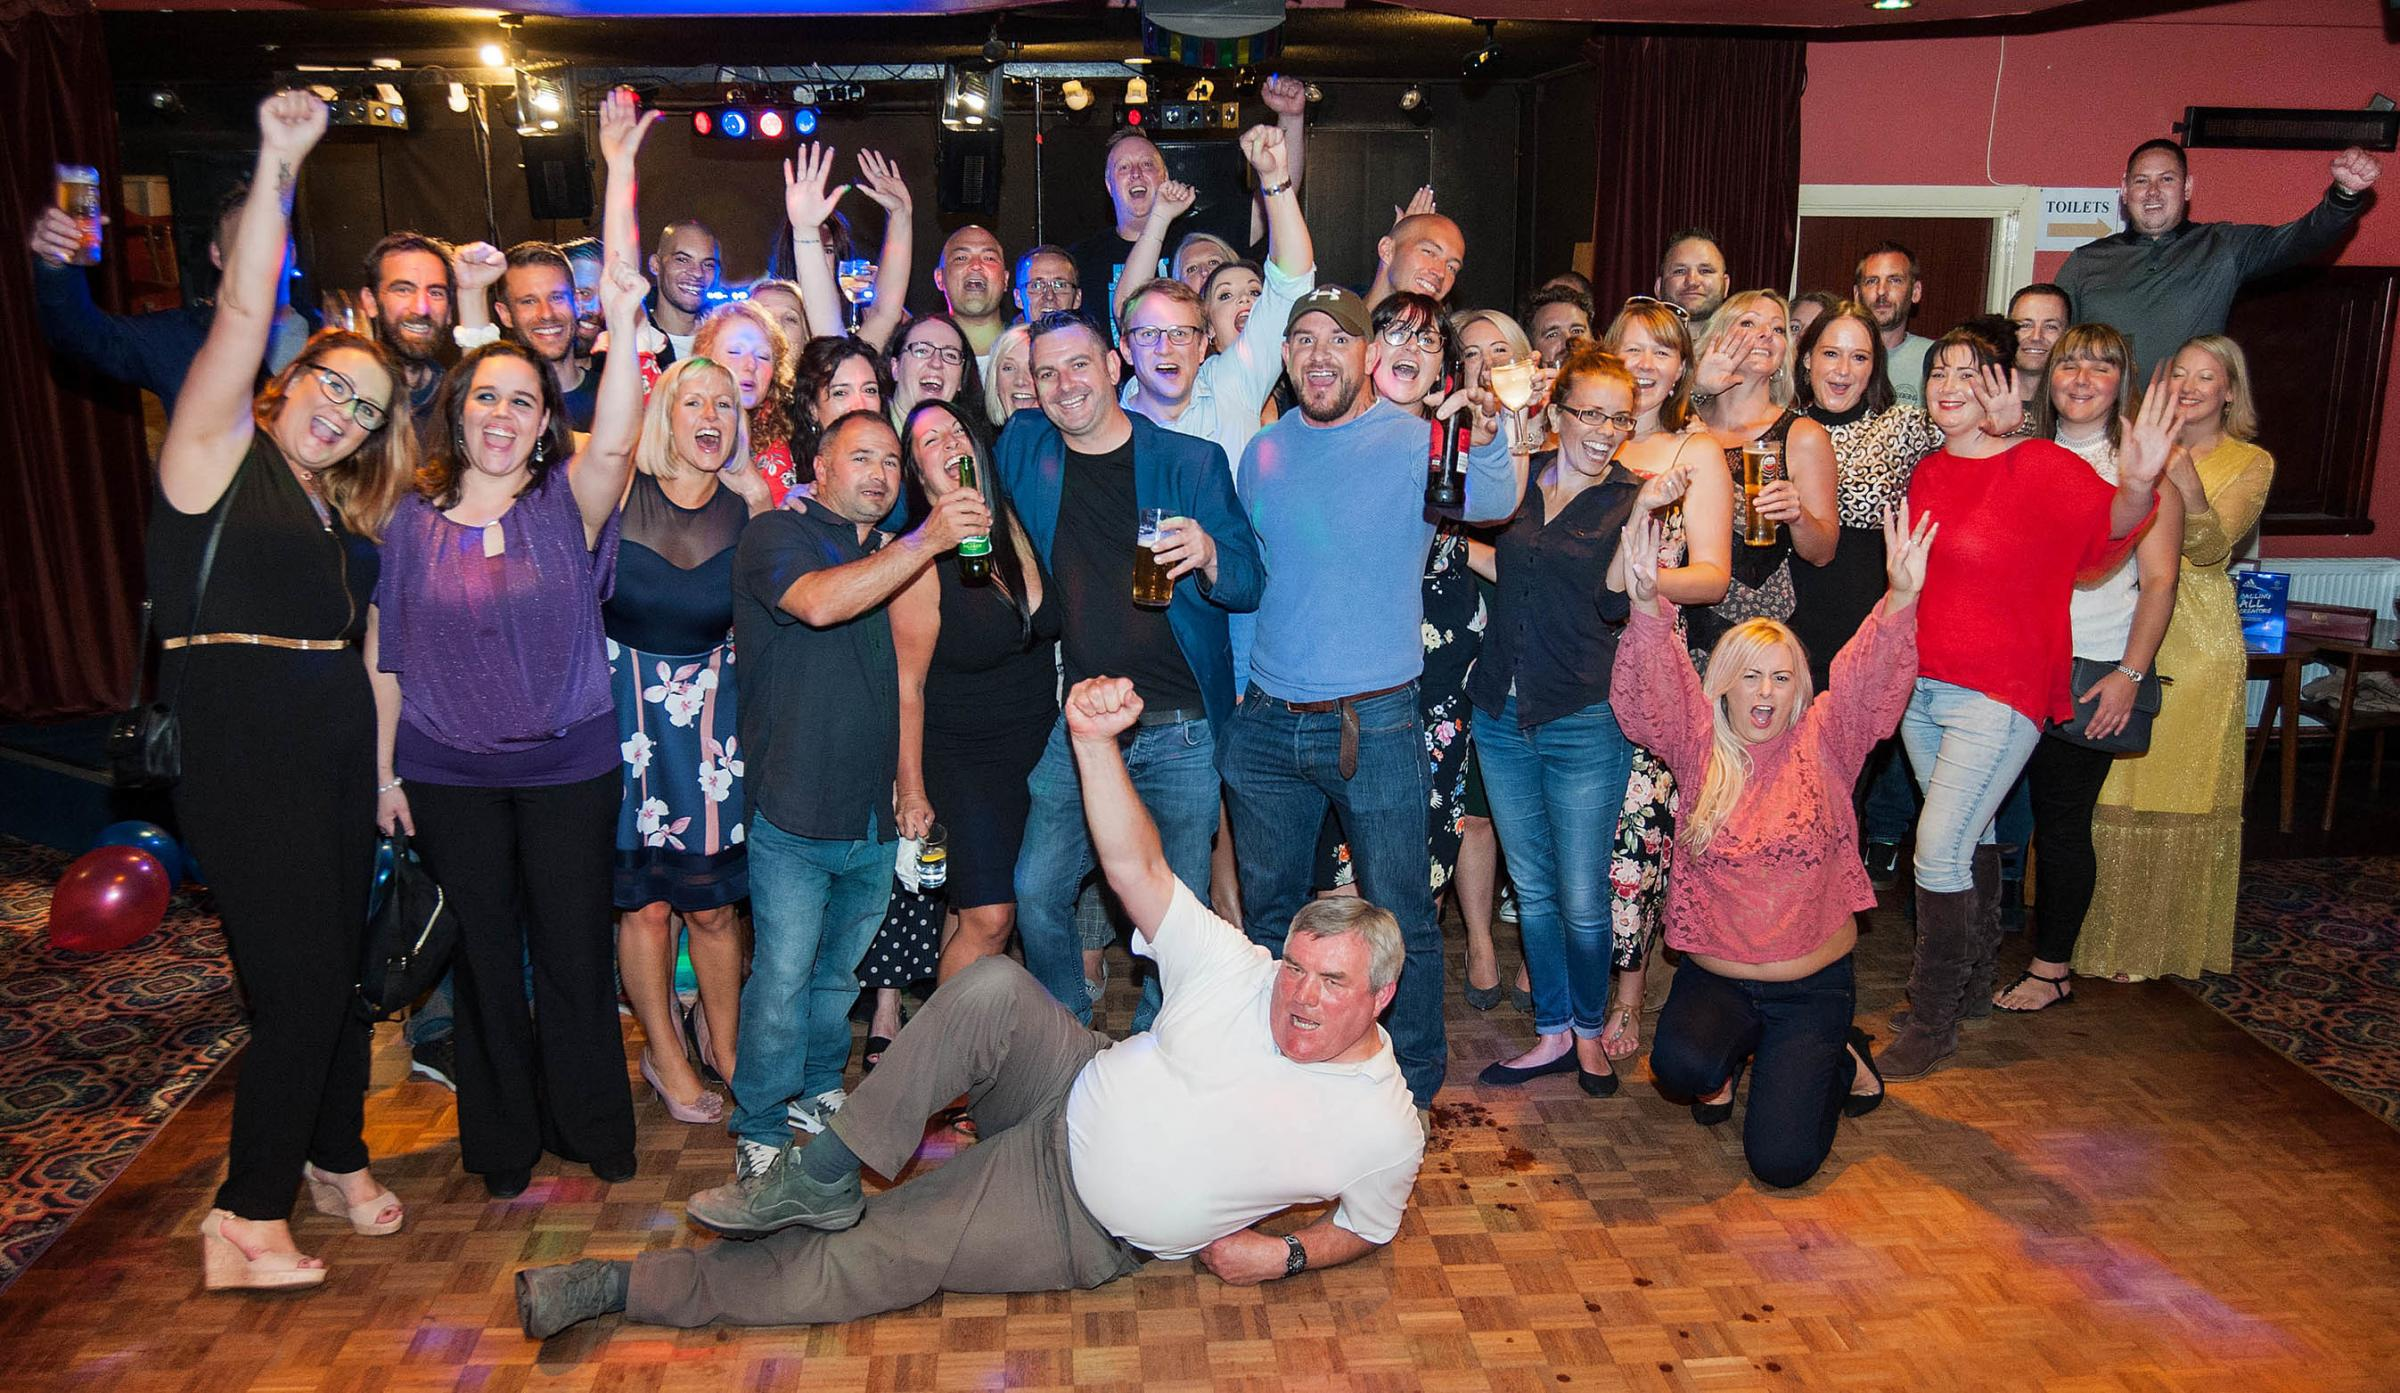 School reunion raised funds for Man Down charity